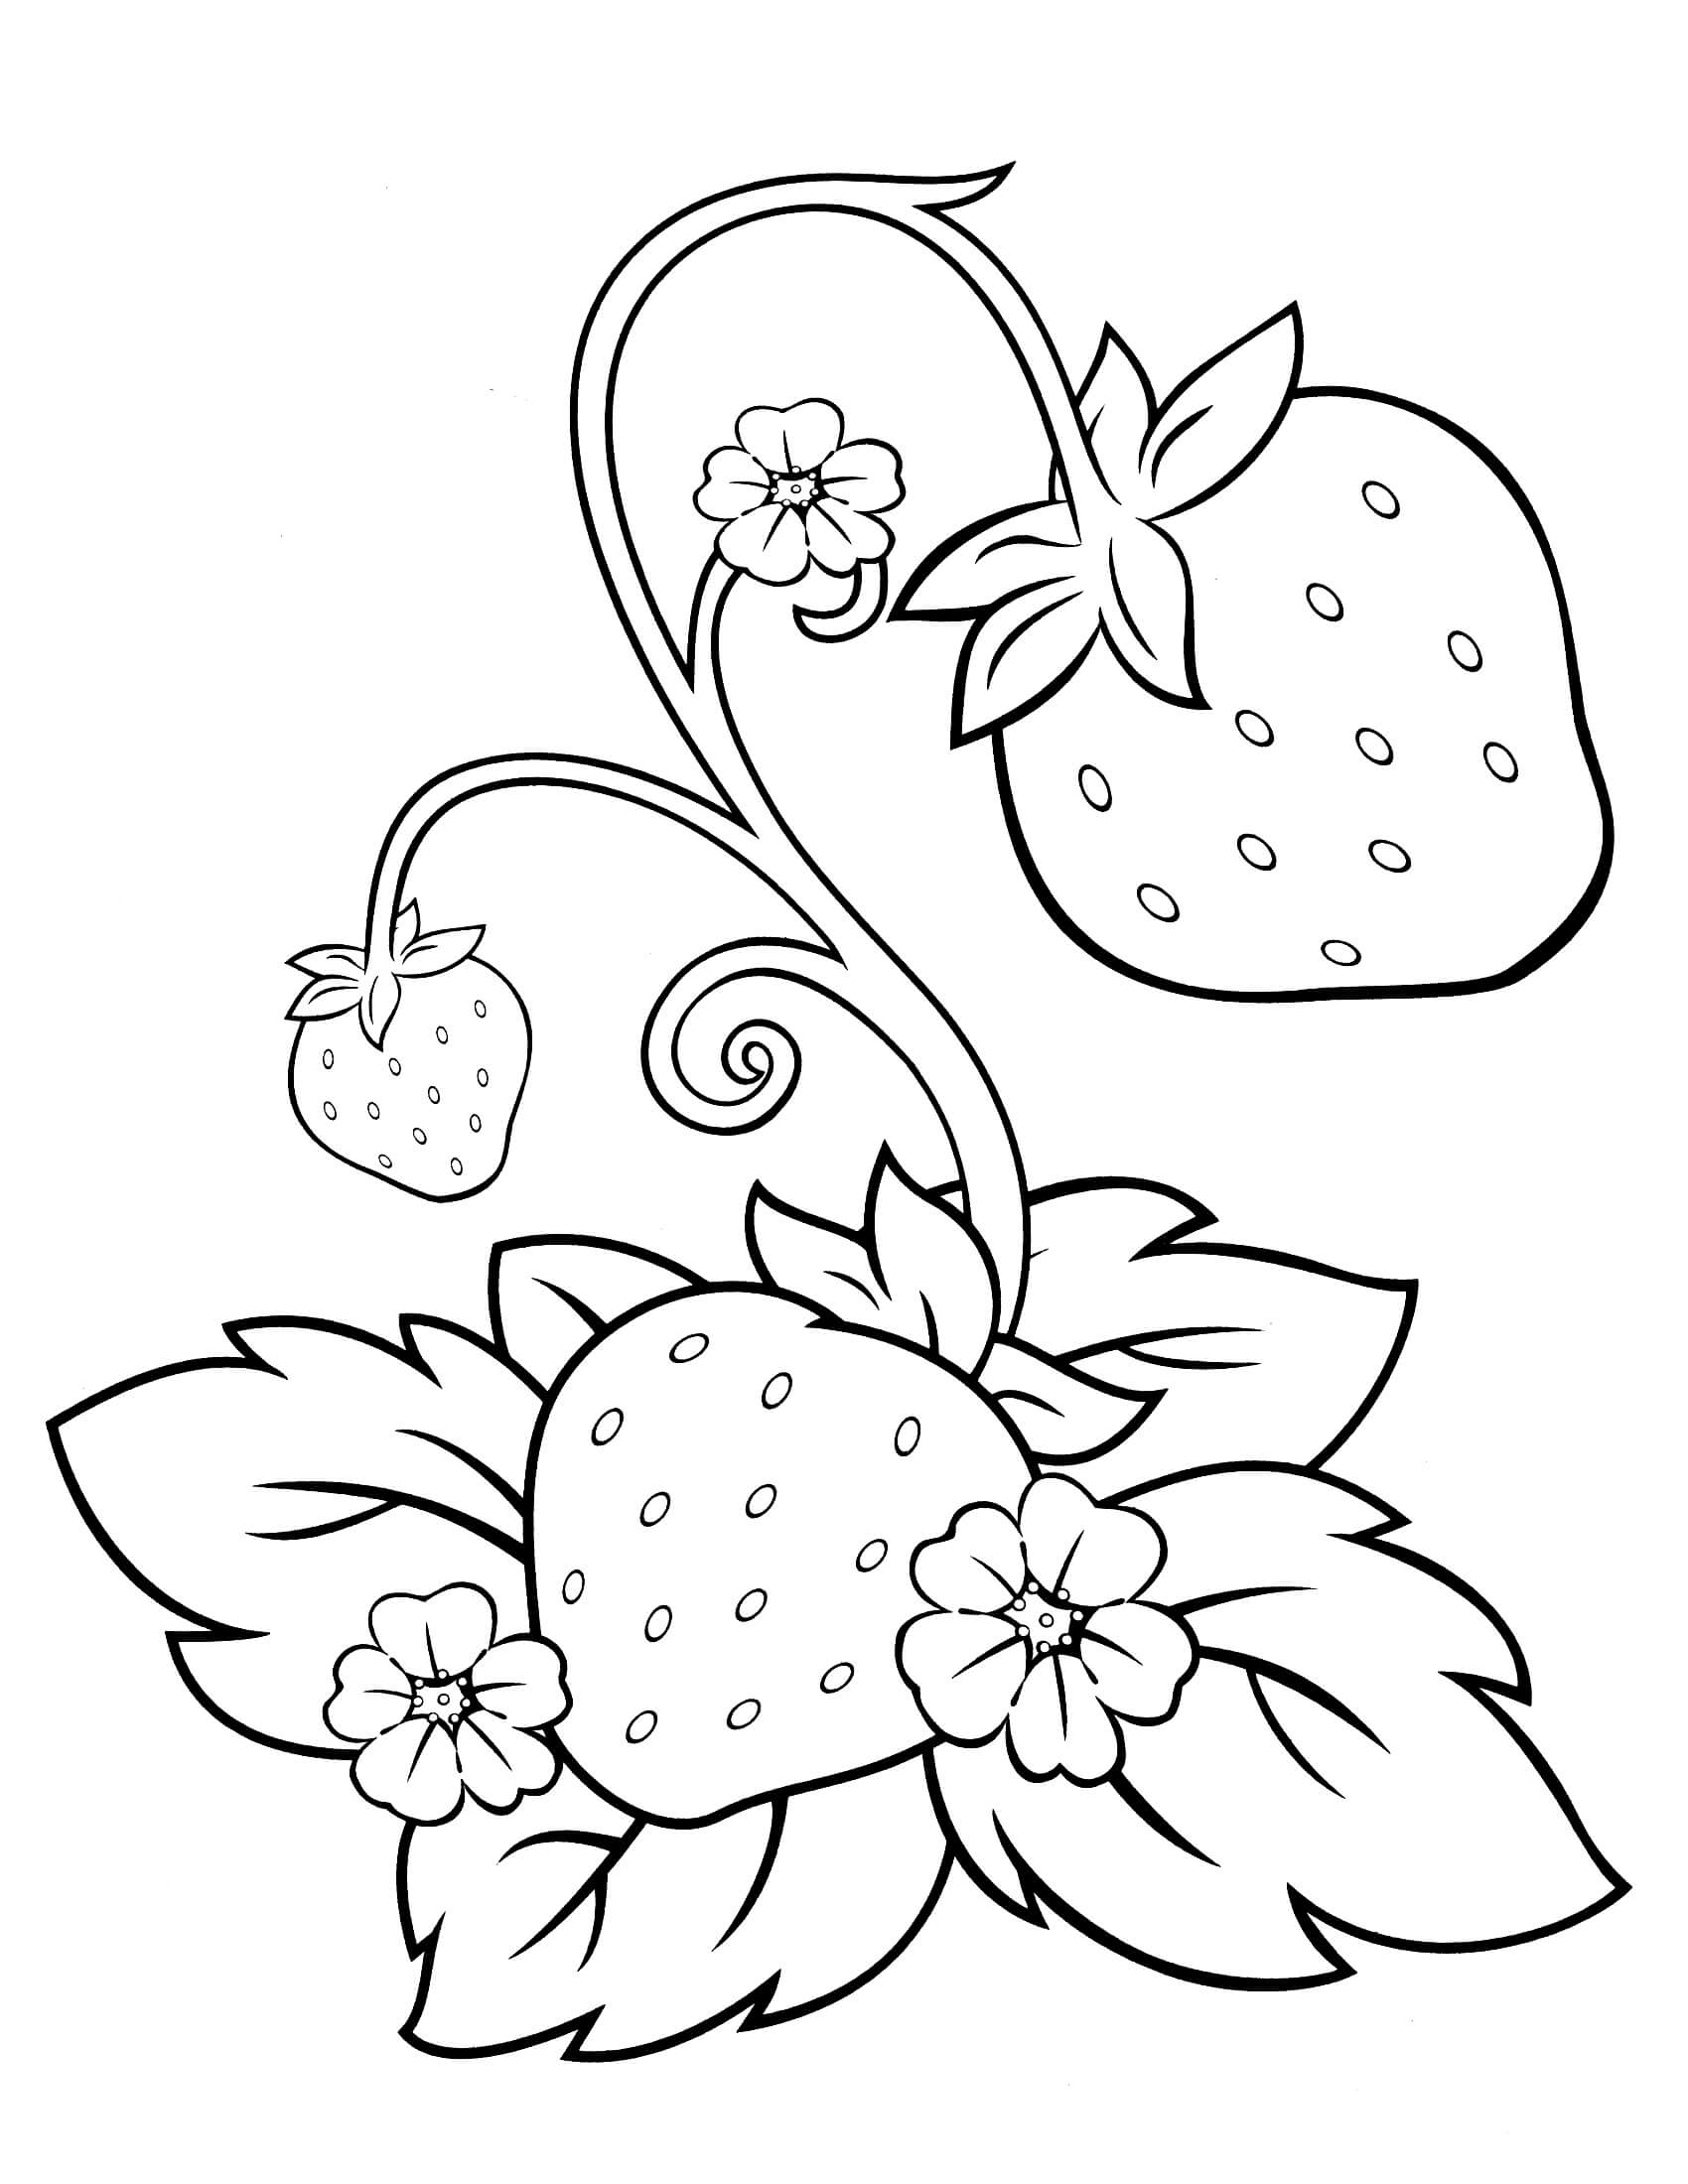 strawberry shortcake colouring in get this strawberry shortcake coloring pages online 29620 in strawberry shortcake colouring